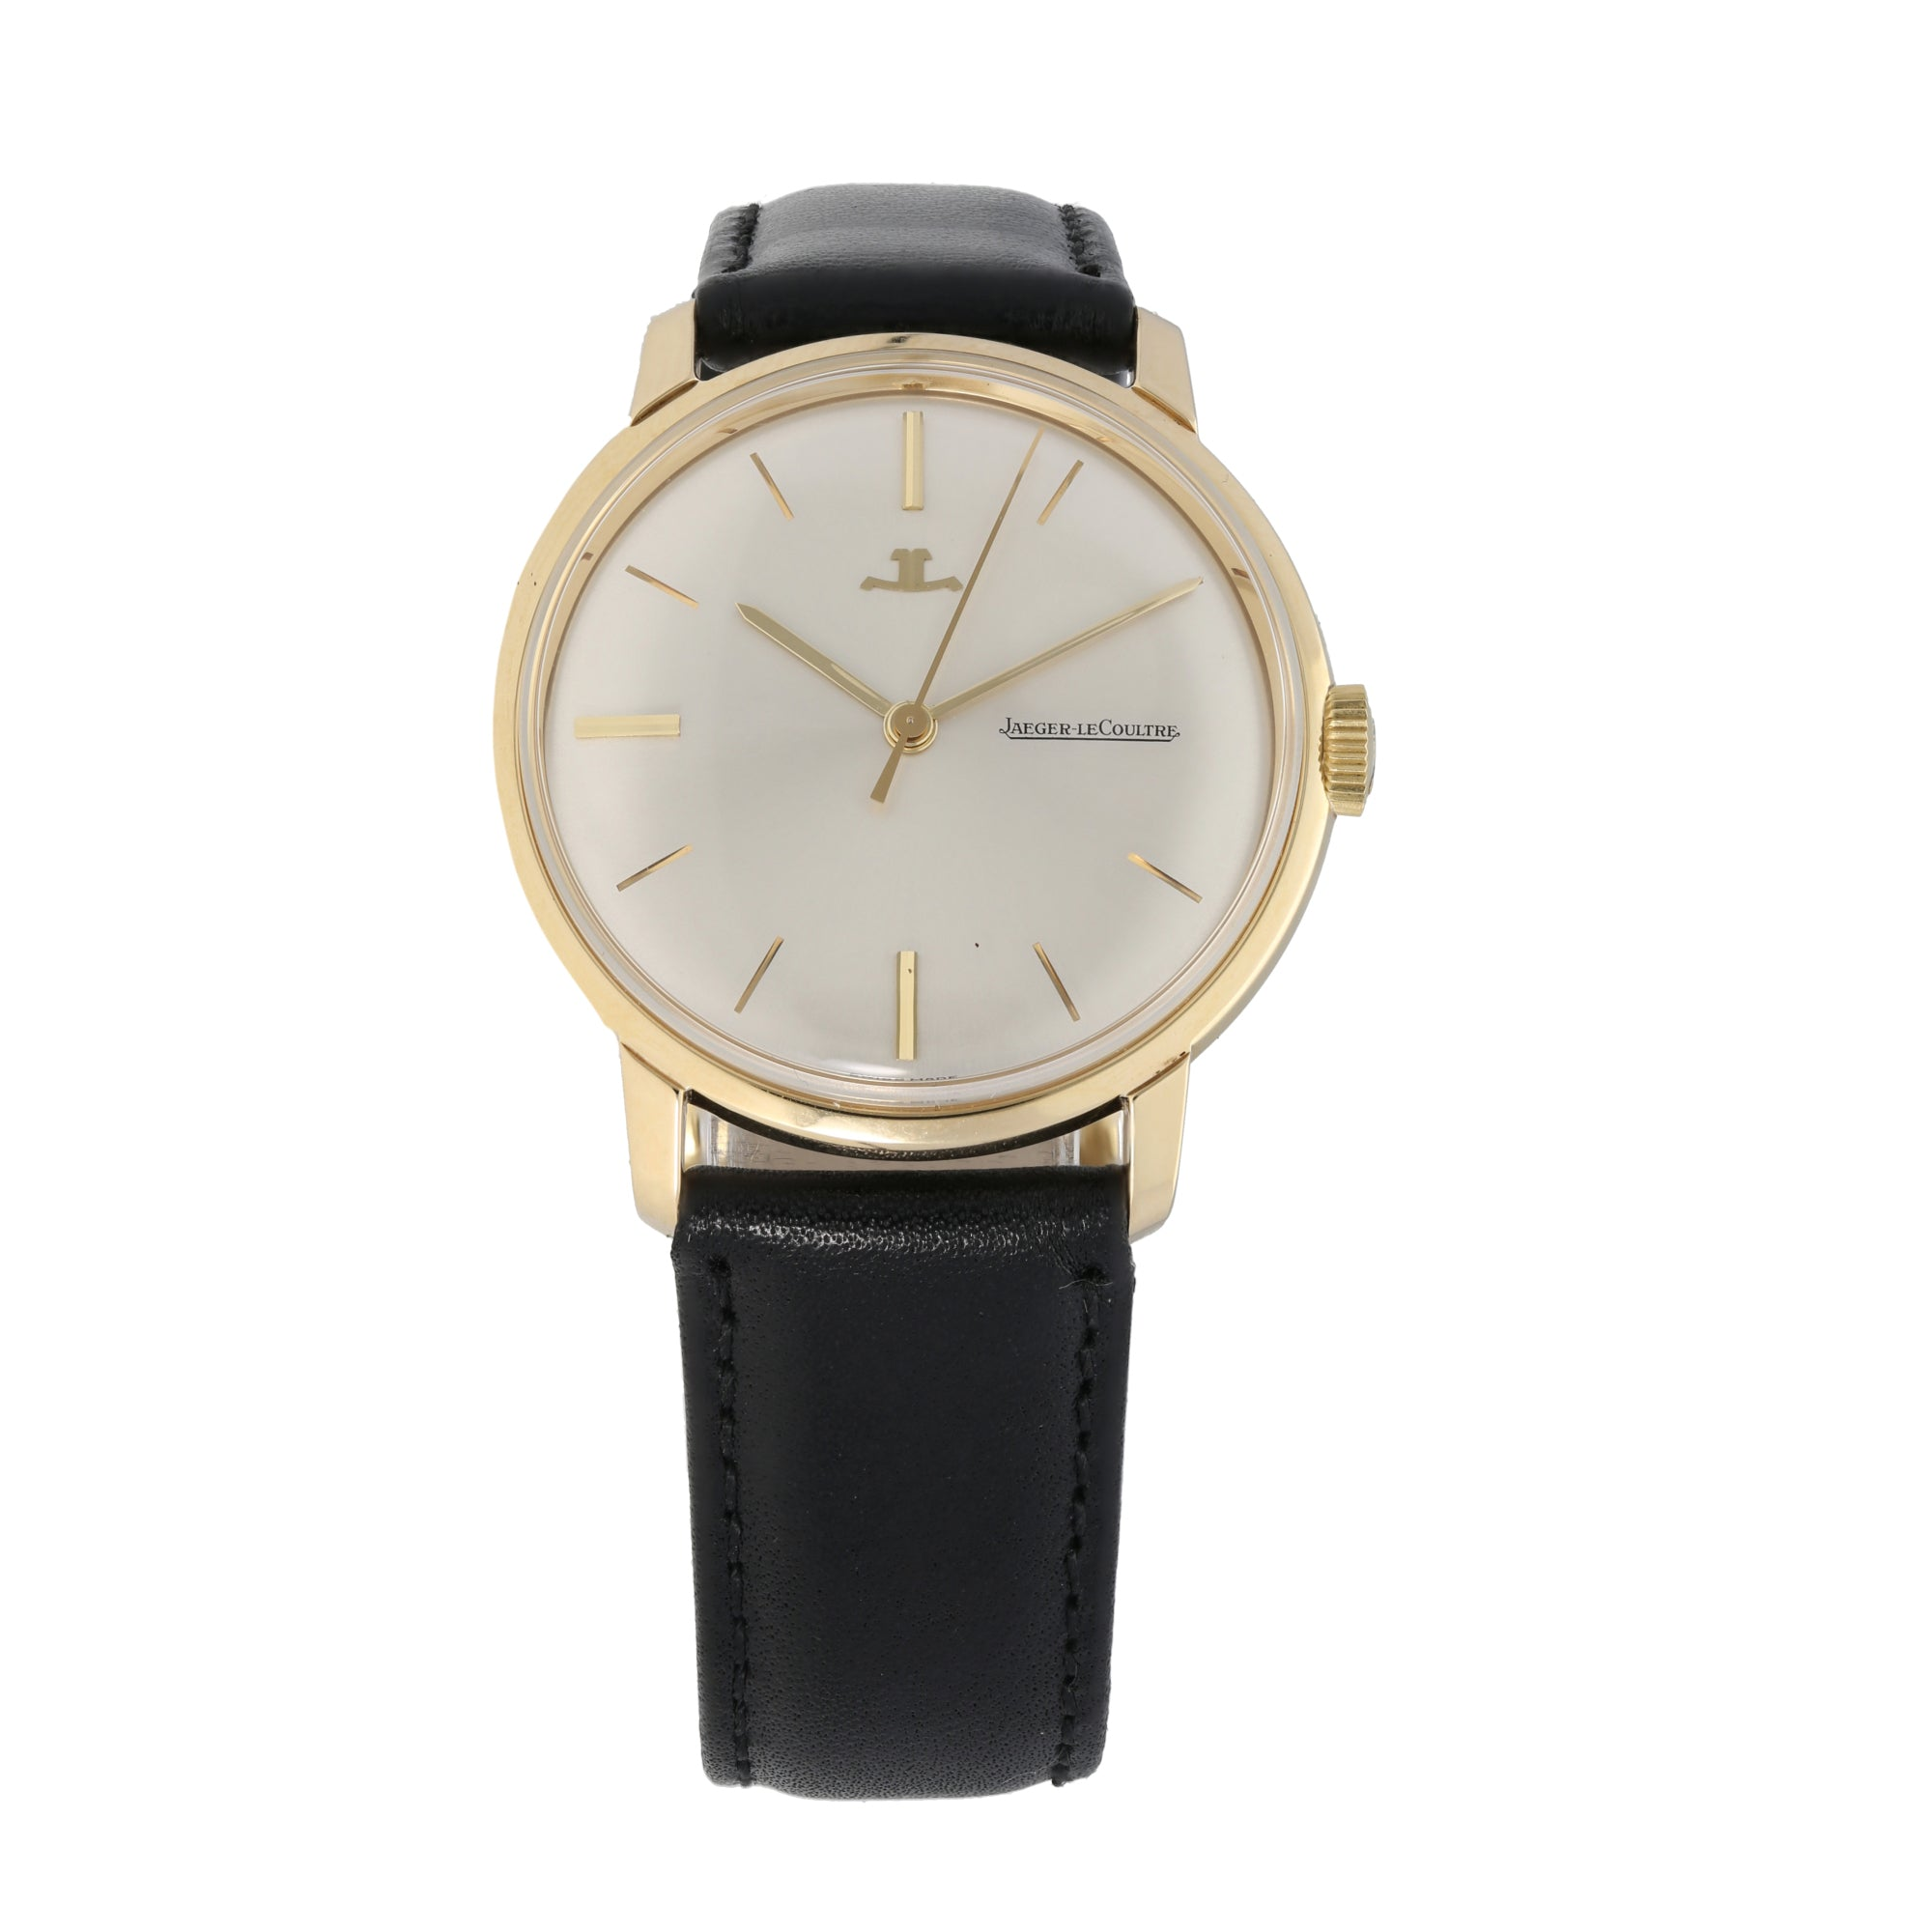 Jaeger-Lecoultre Vintage 34mm 9Ct Gold Mens Watch